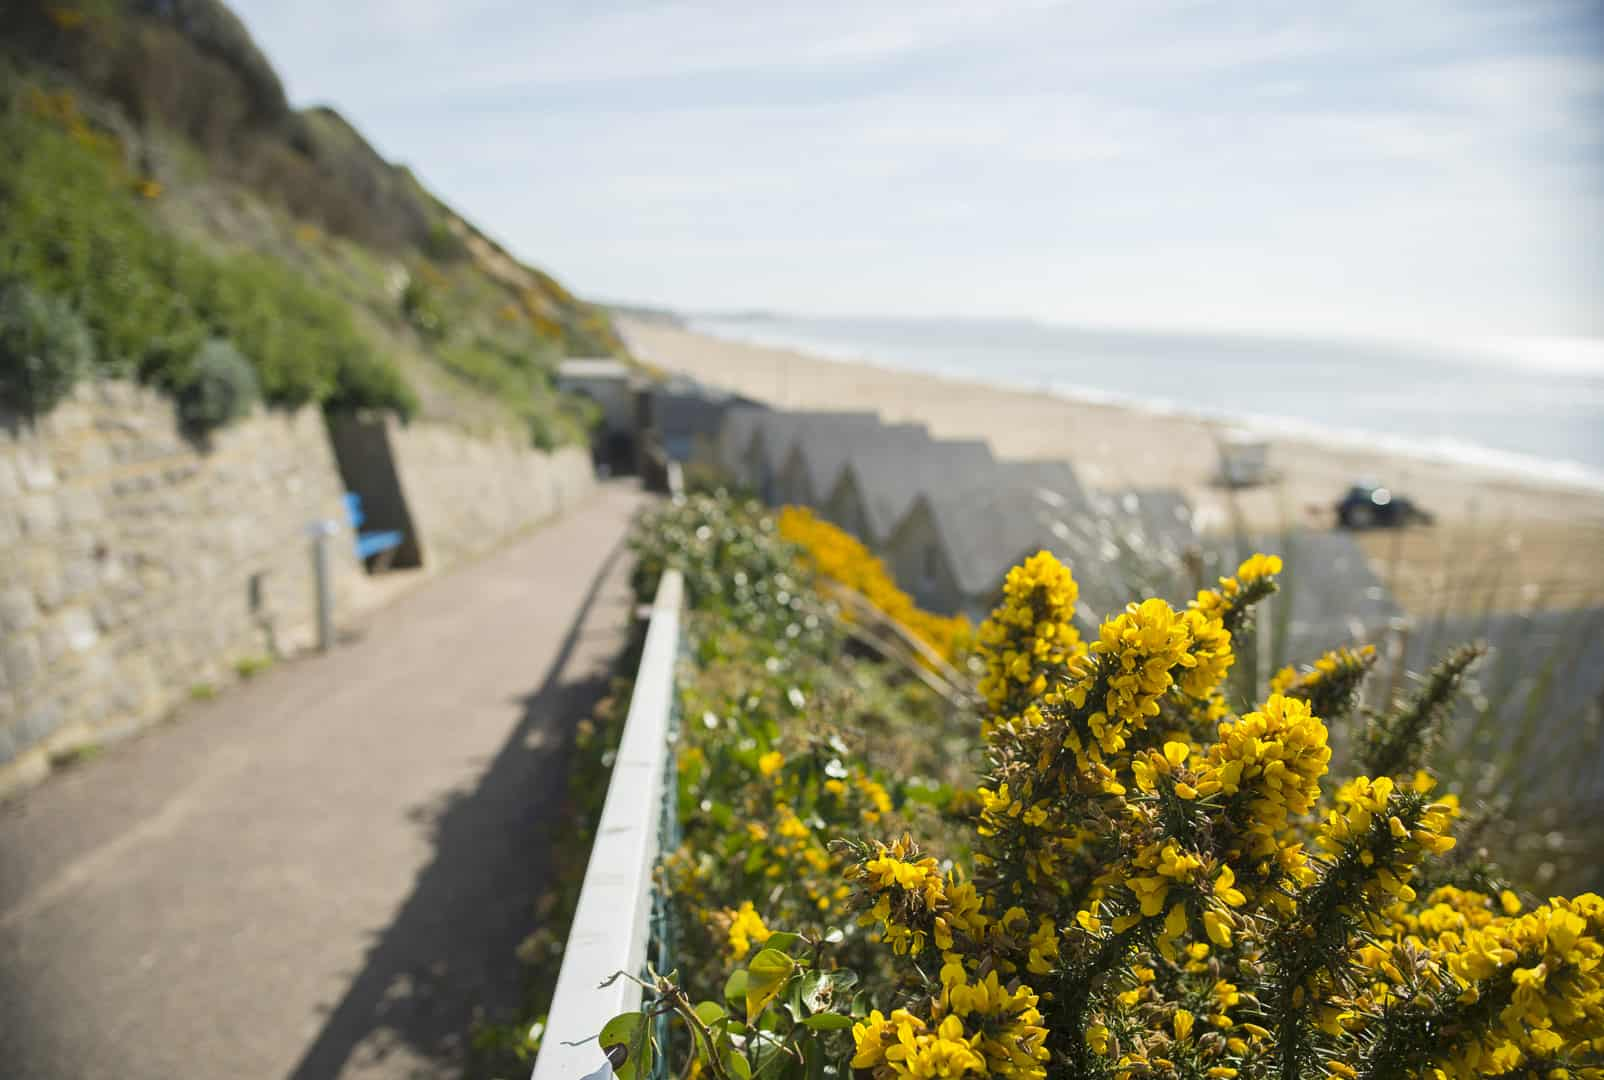 Lovely shot of flowers blooming on the Zig zag walk down to the Beach Lodges